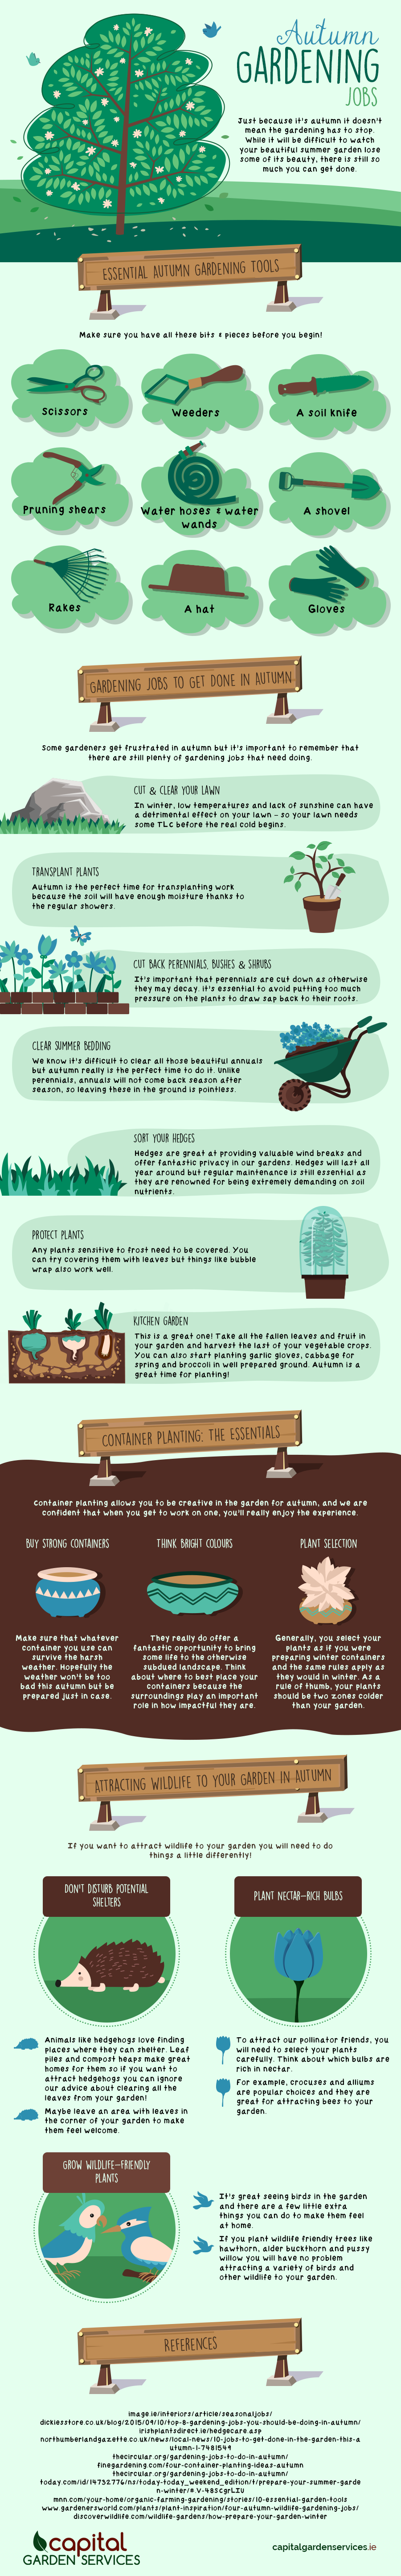 autumn garden jobs infographic